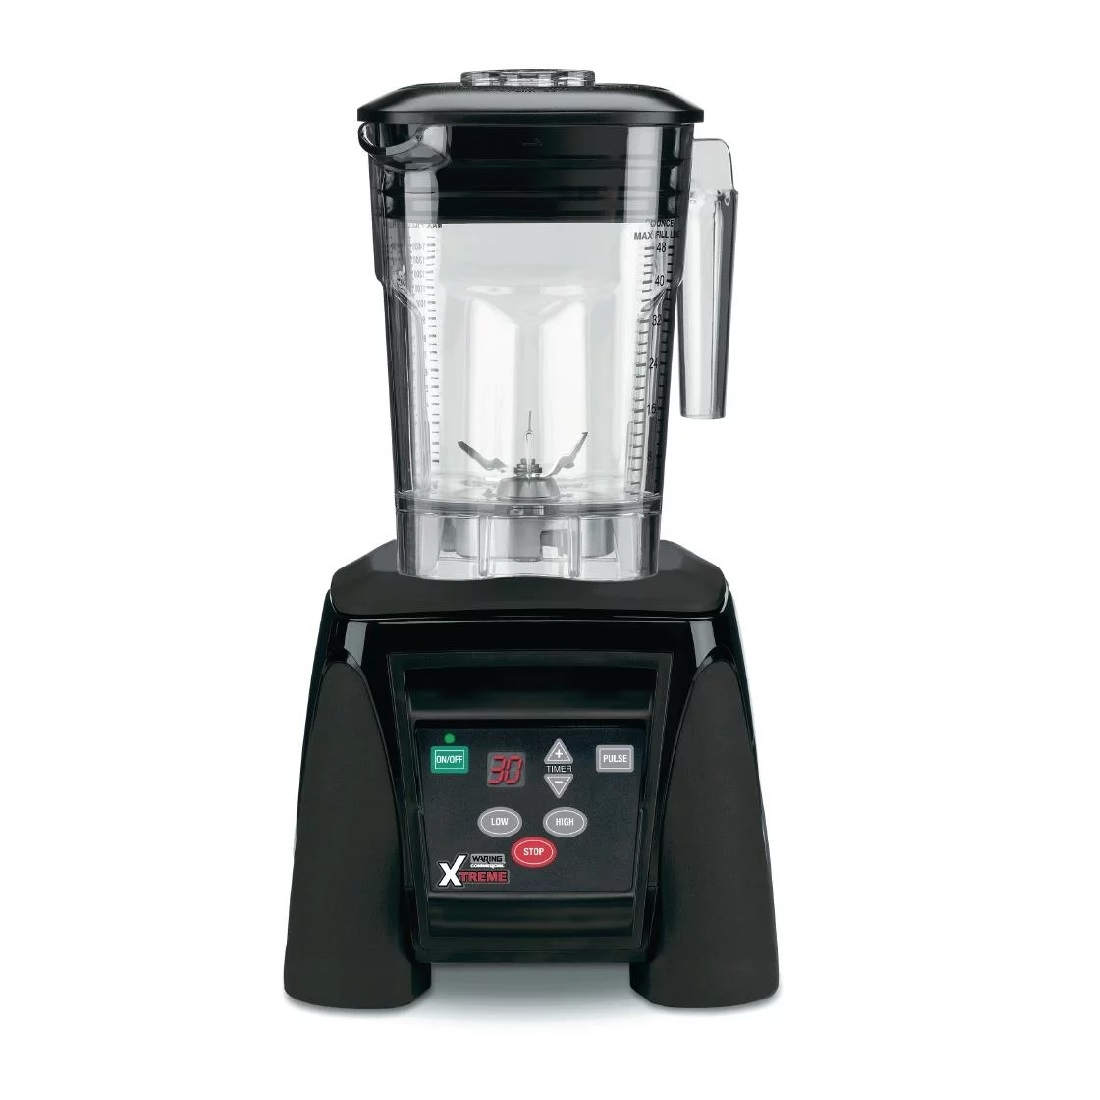 Industrial Kitchen Blender: Food Blenders